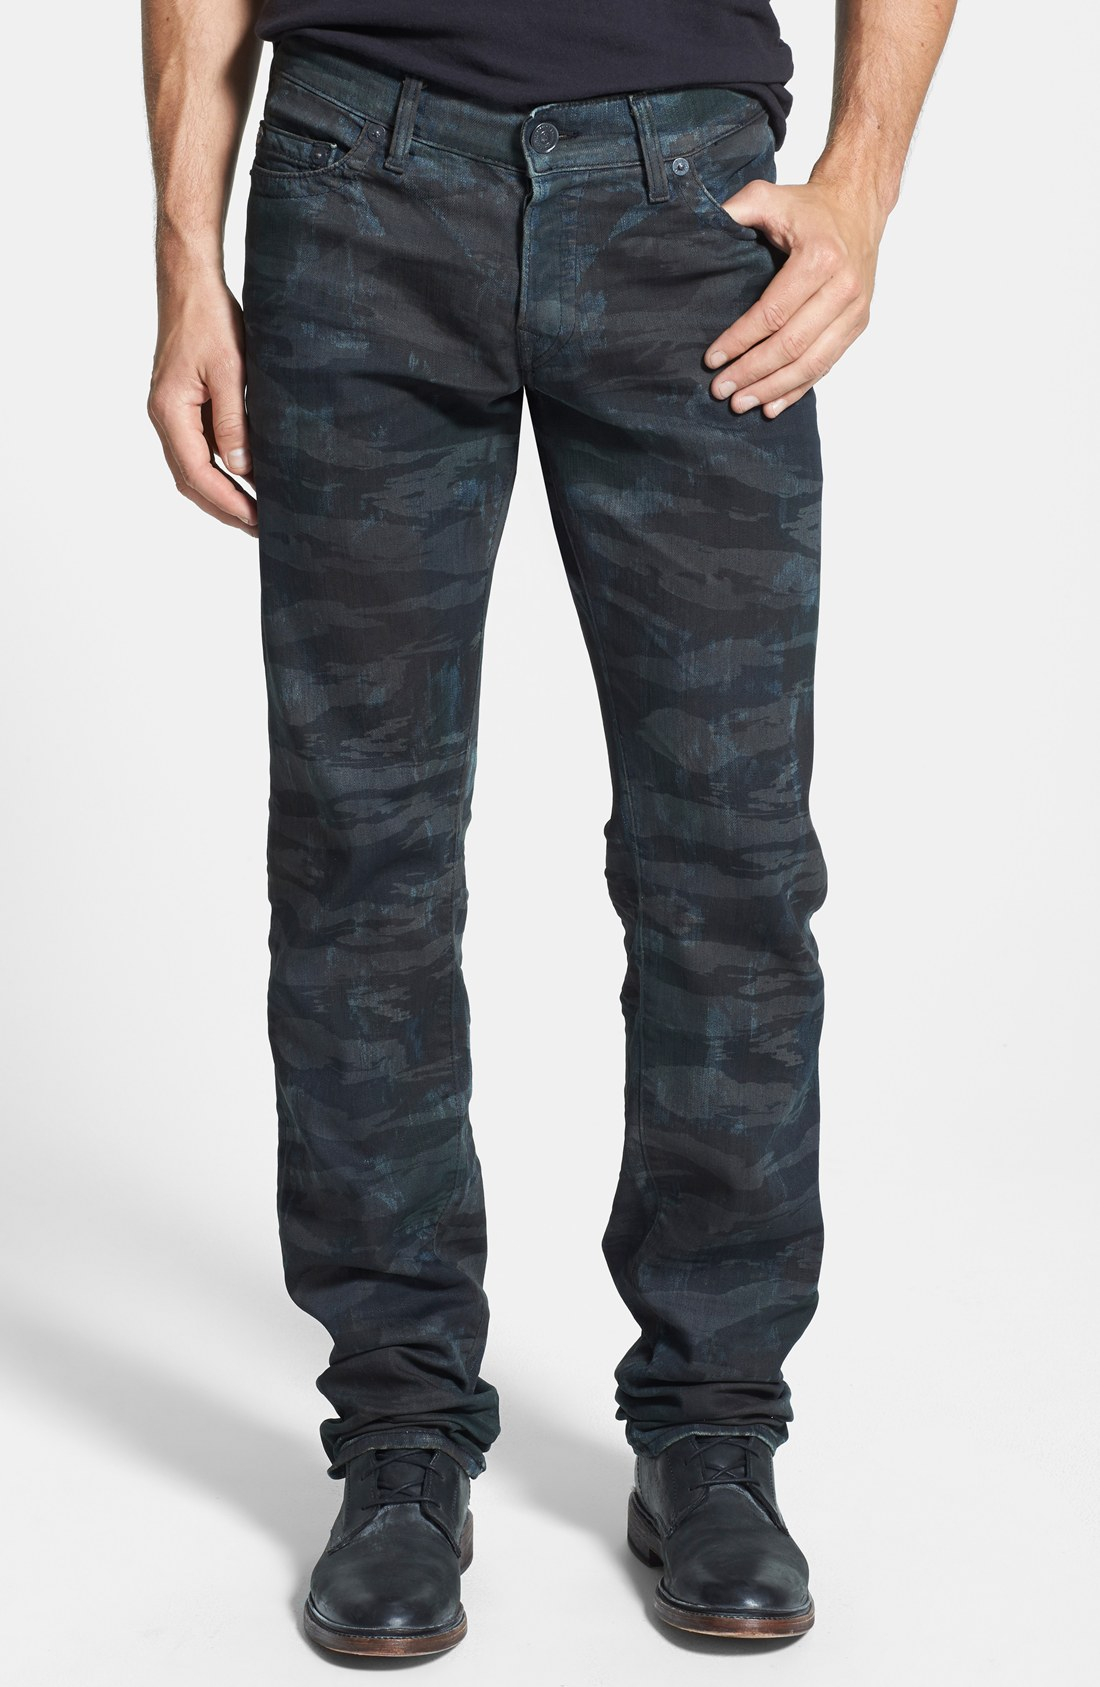 true religion brand jeans 39 geno 39 camo relaxed slim fit. Black Bedroom Furniture Sets. Home Design Ideas